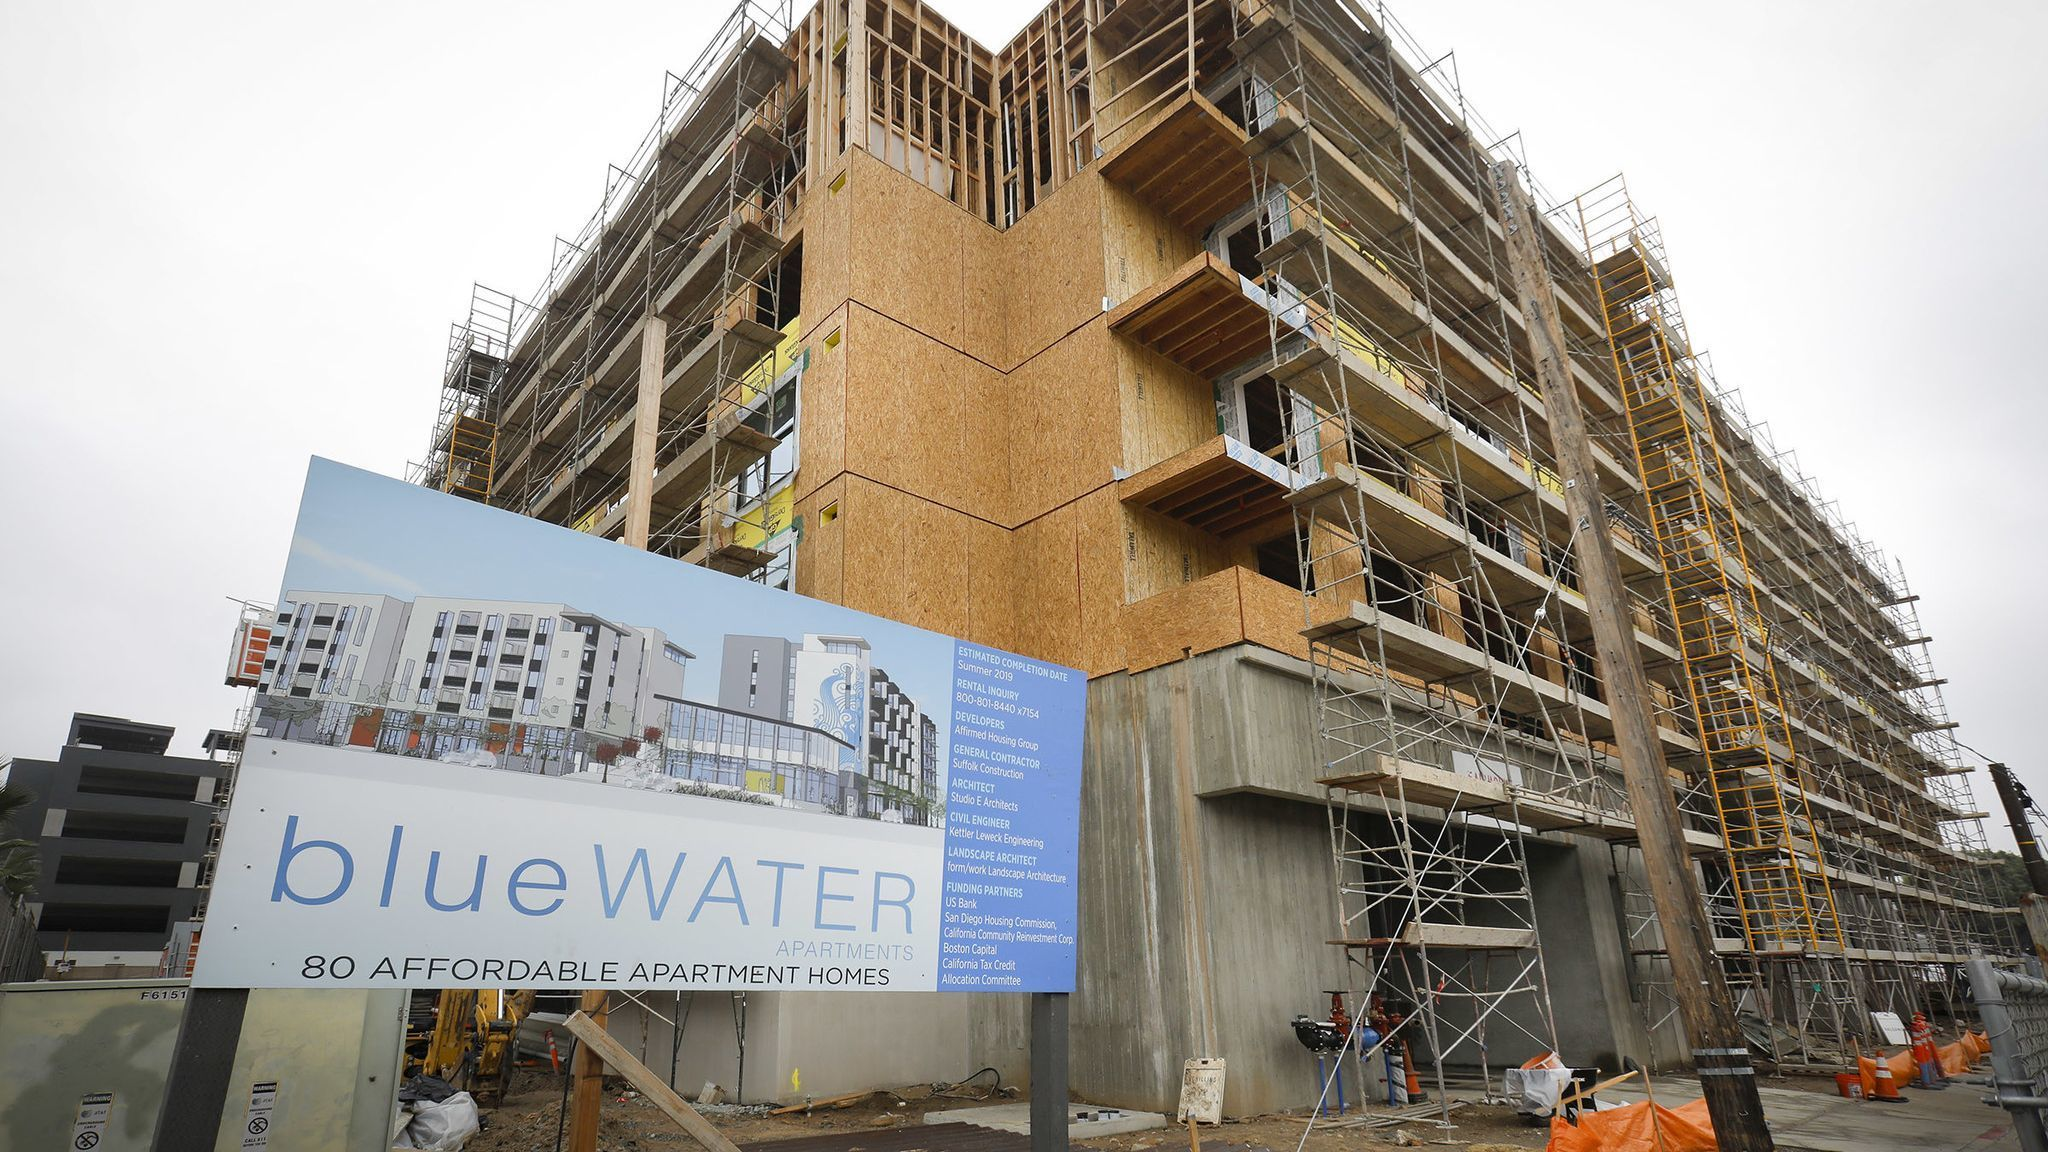 Grantville building boom could be model for solving San Diego's housing crisis